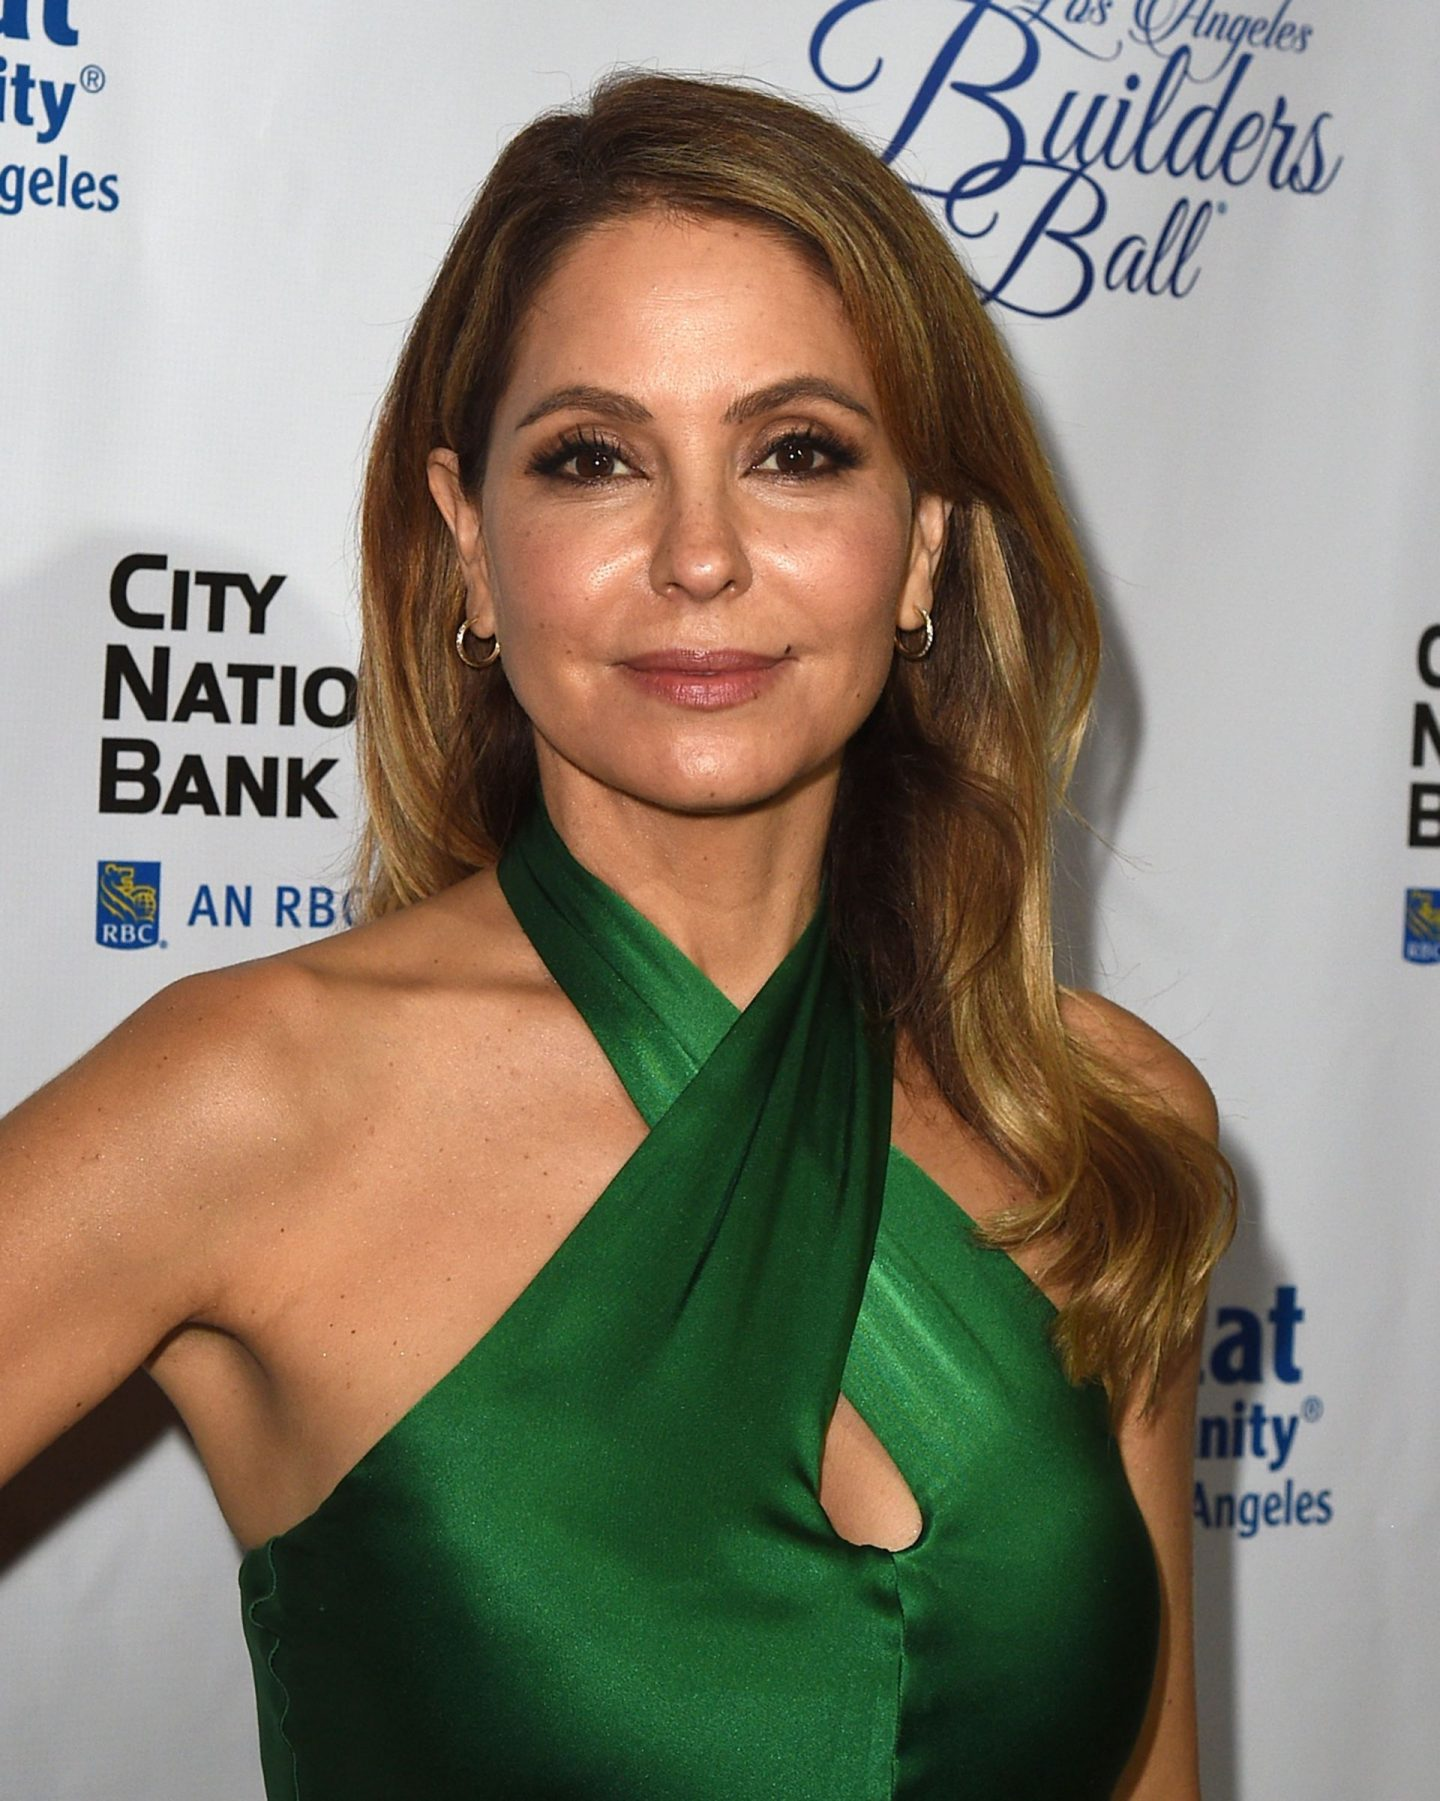 Habitat for Humanity of Greater Los Angeles Hosts Annual Star-Studded Gala